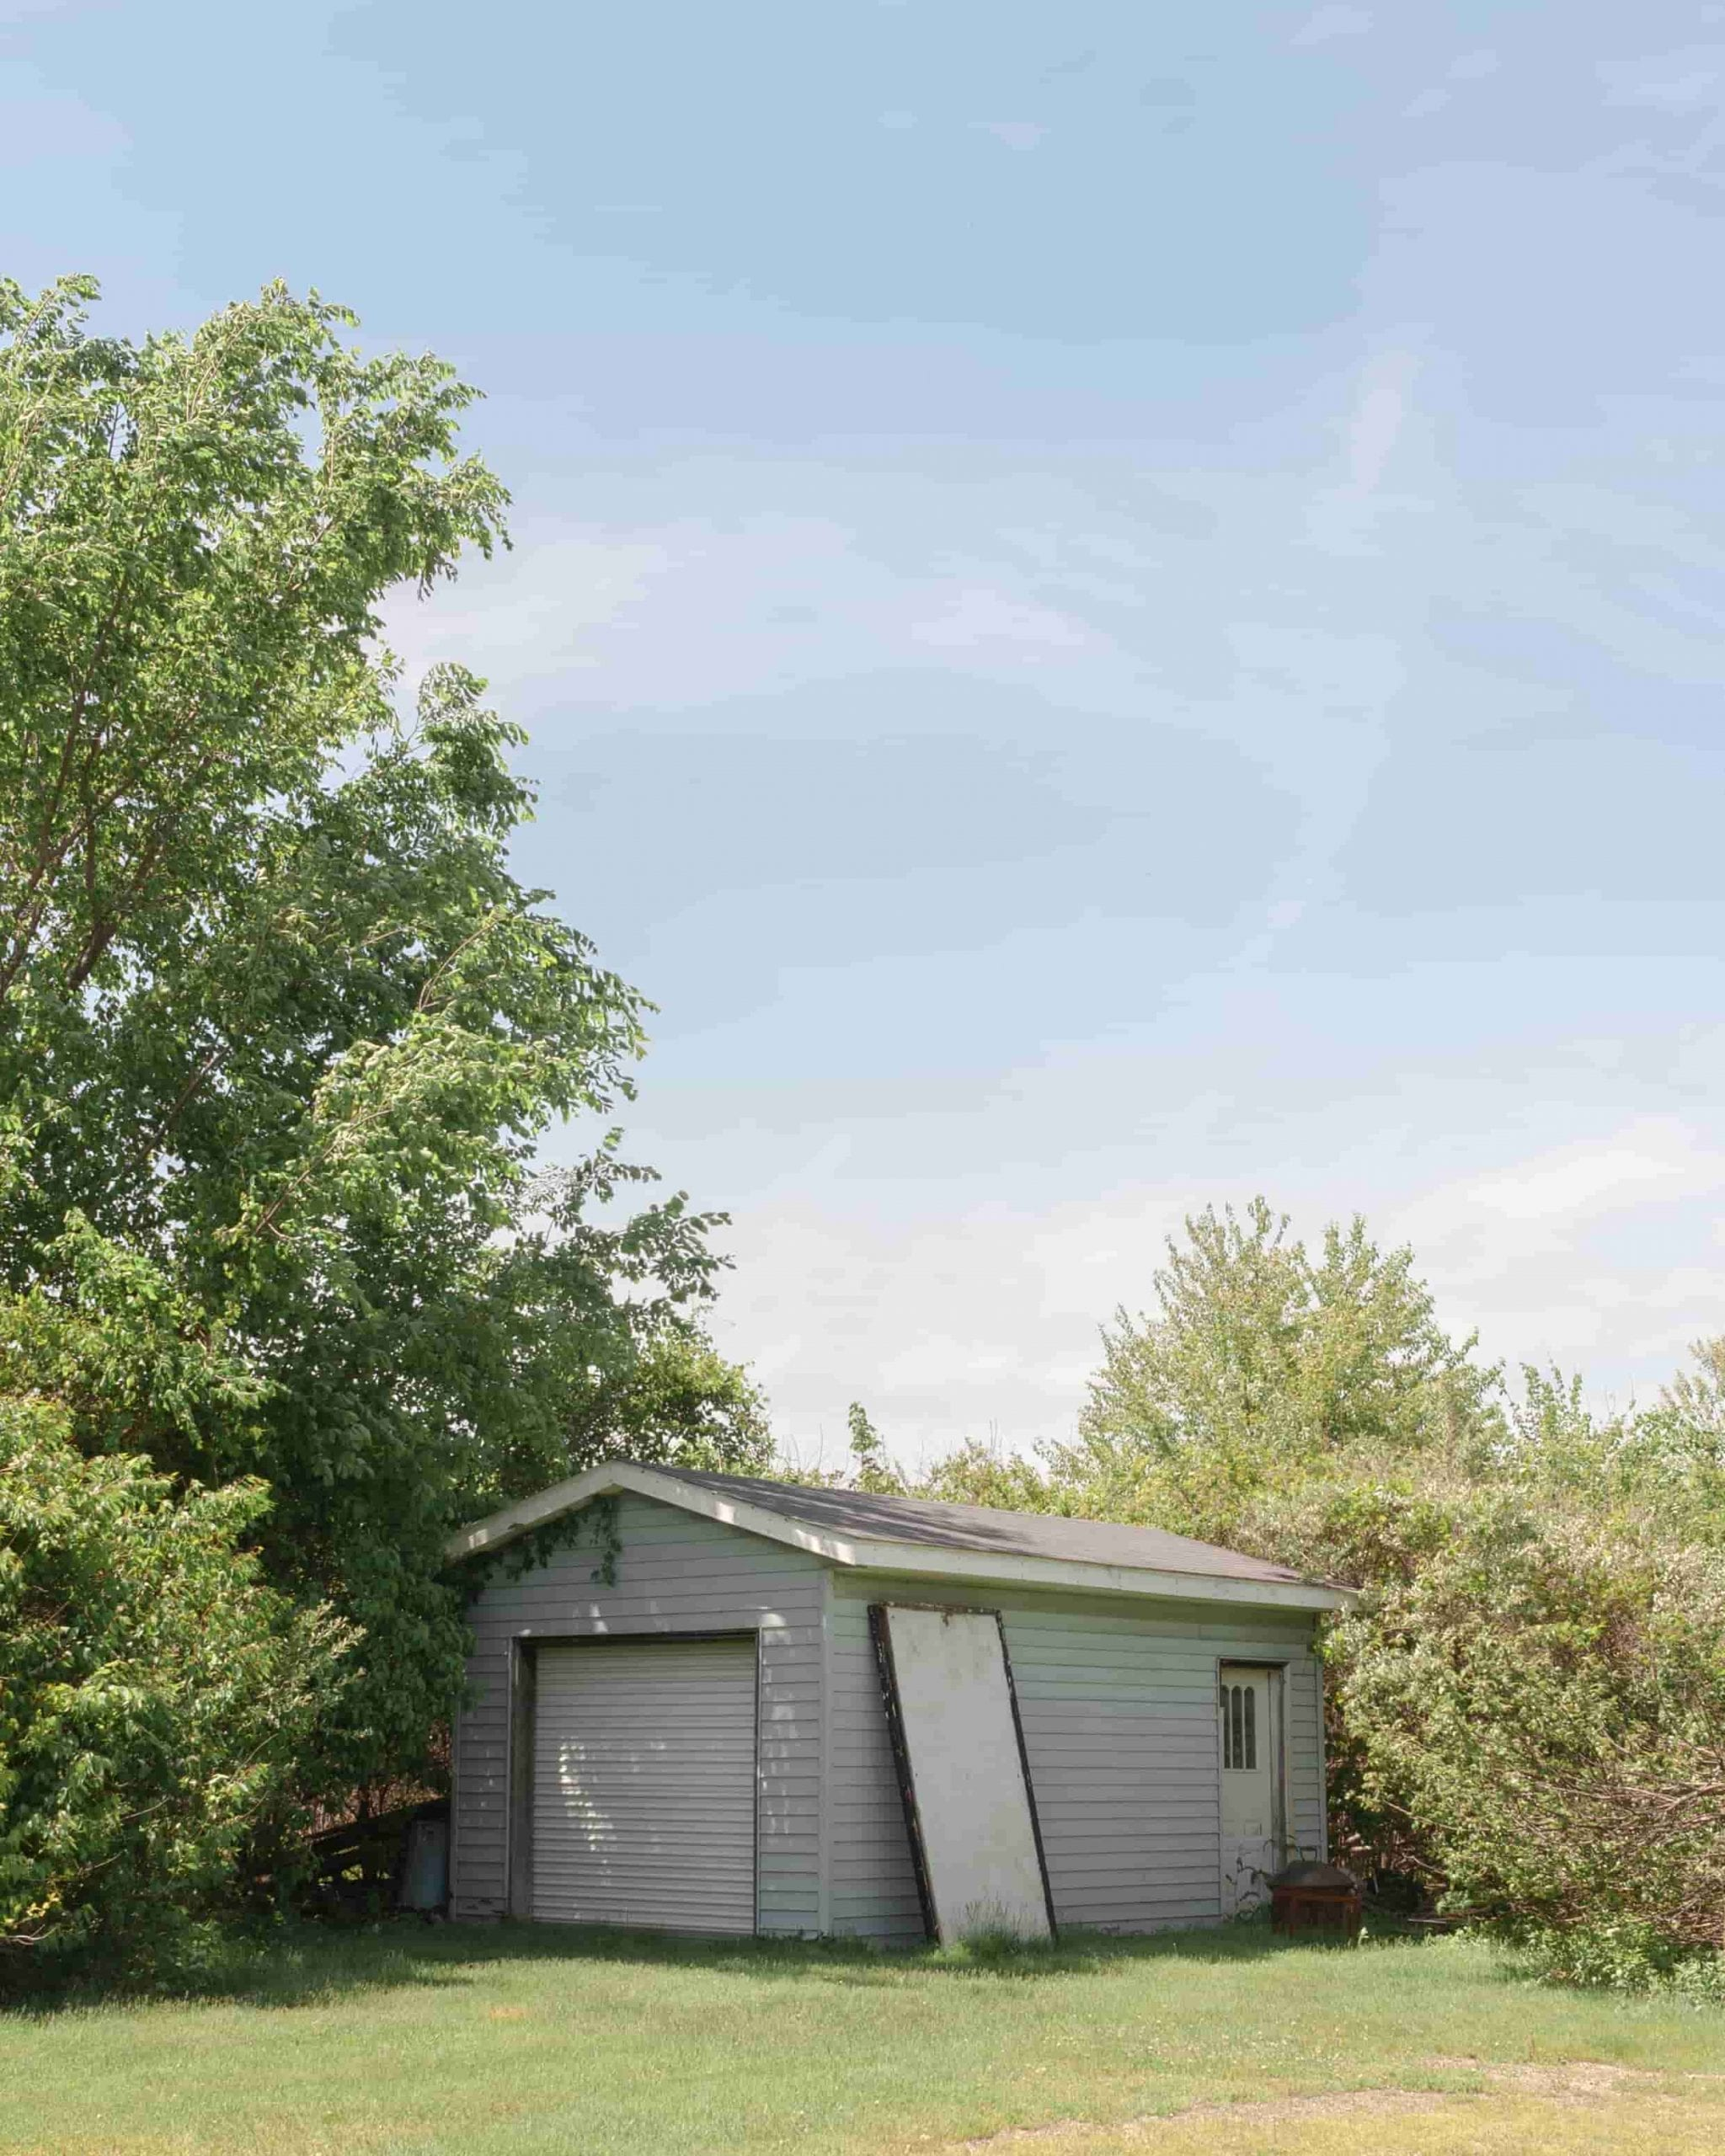 small gray shed with white door at back corner of property